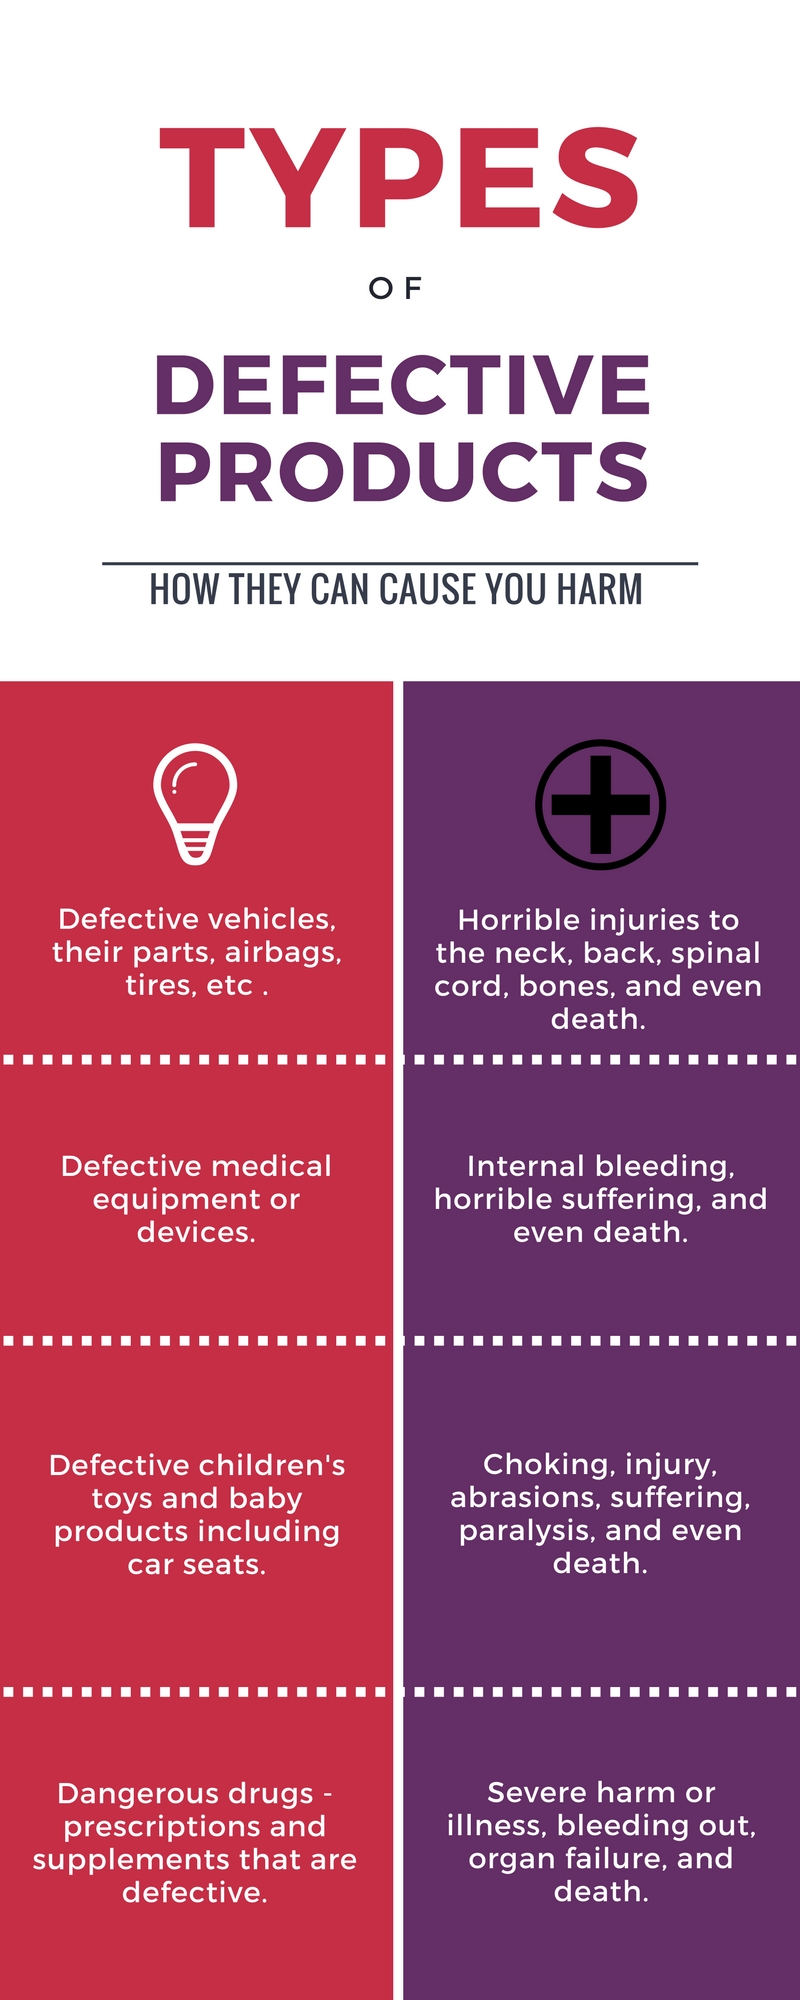 Defective Product Infographic | Dallas Lawyers